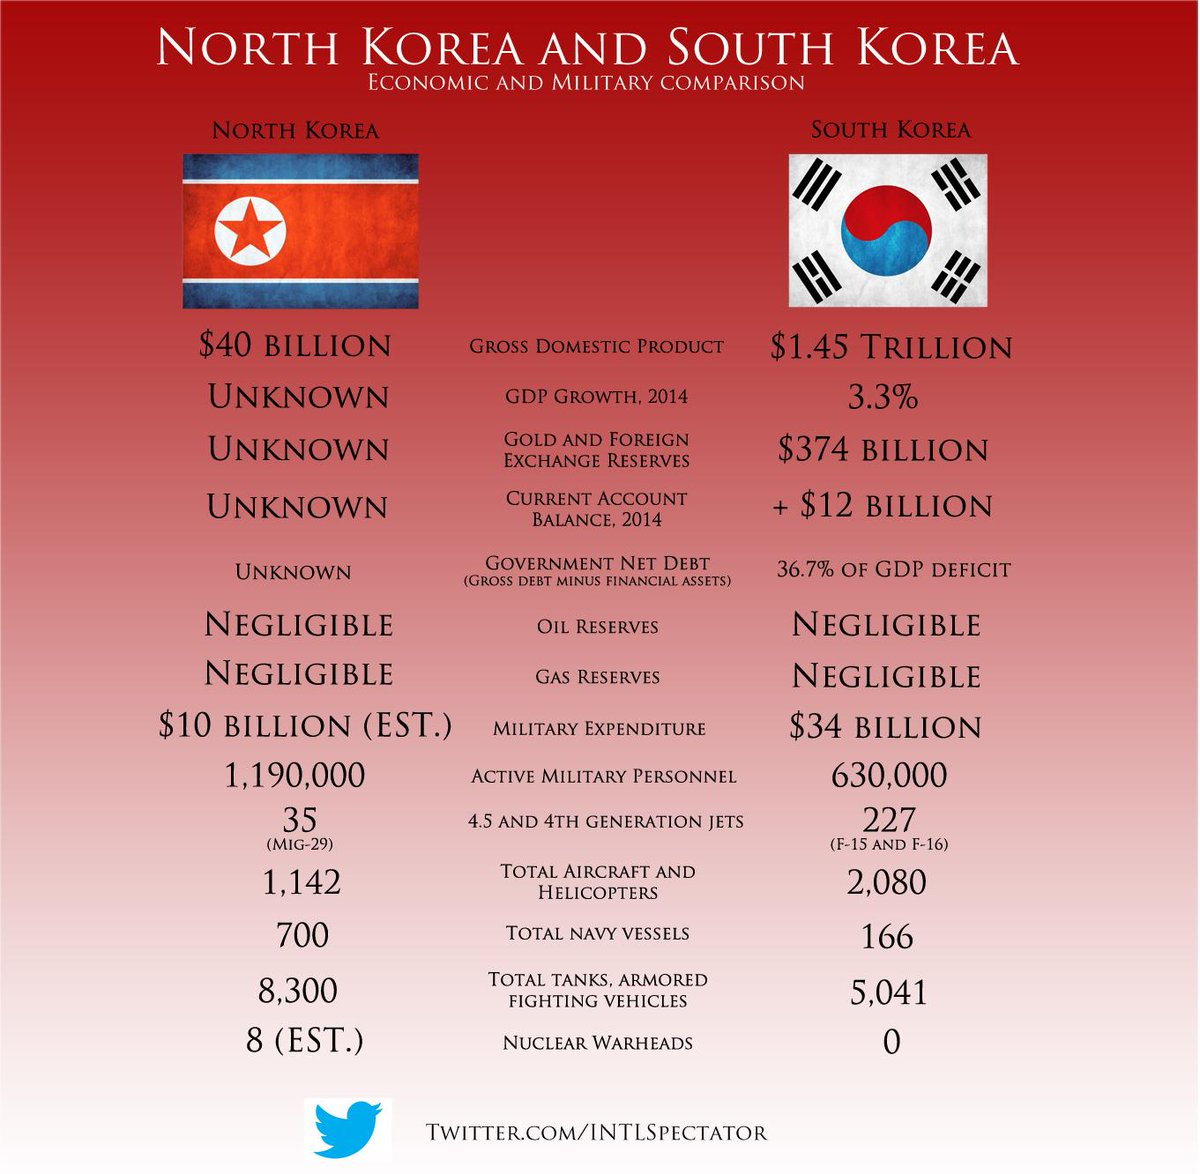 comparing economies south korea and The economy of south korea is the 4th largest in asia and the 11th largest in the world it is a mixed economy dominated by family-owned conglomerates called chaebols.